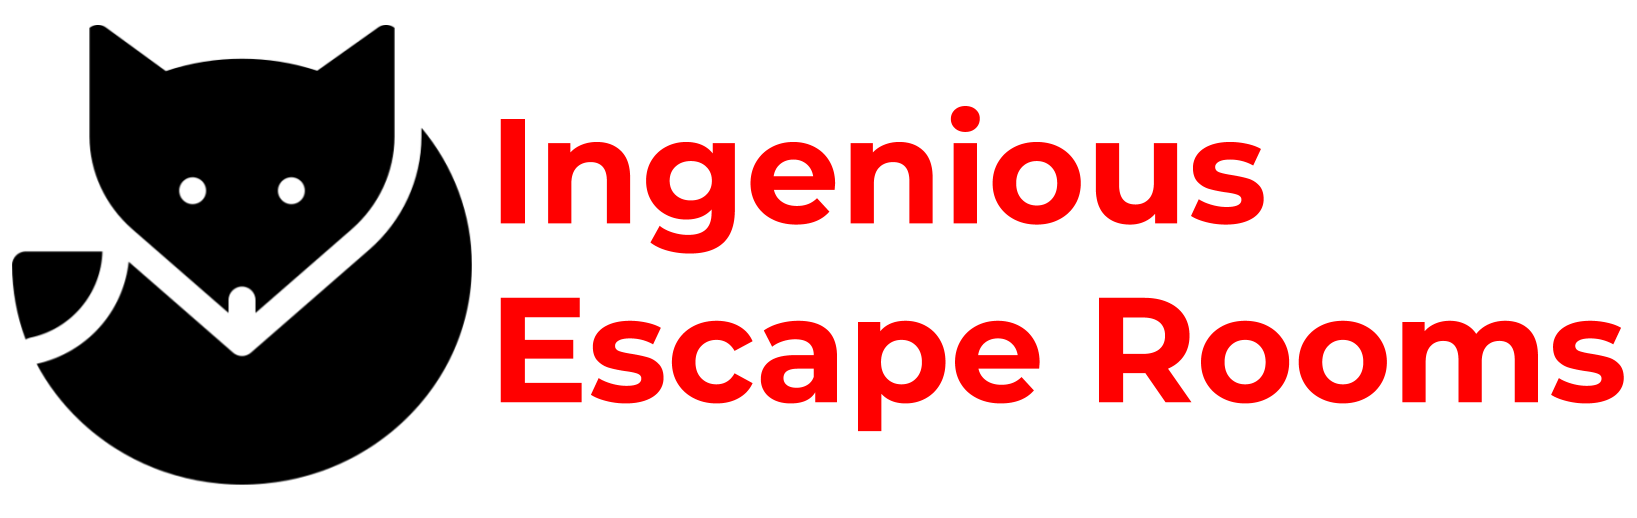 Ingenious Escape Rooms |   About